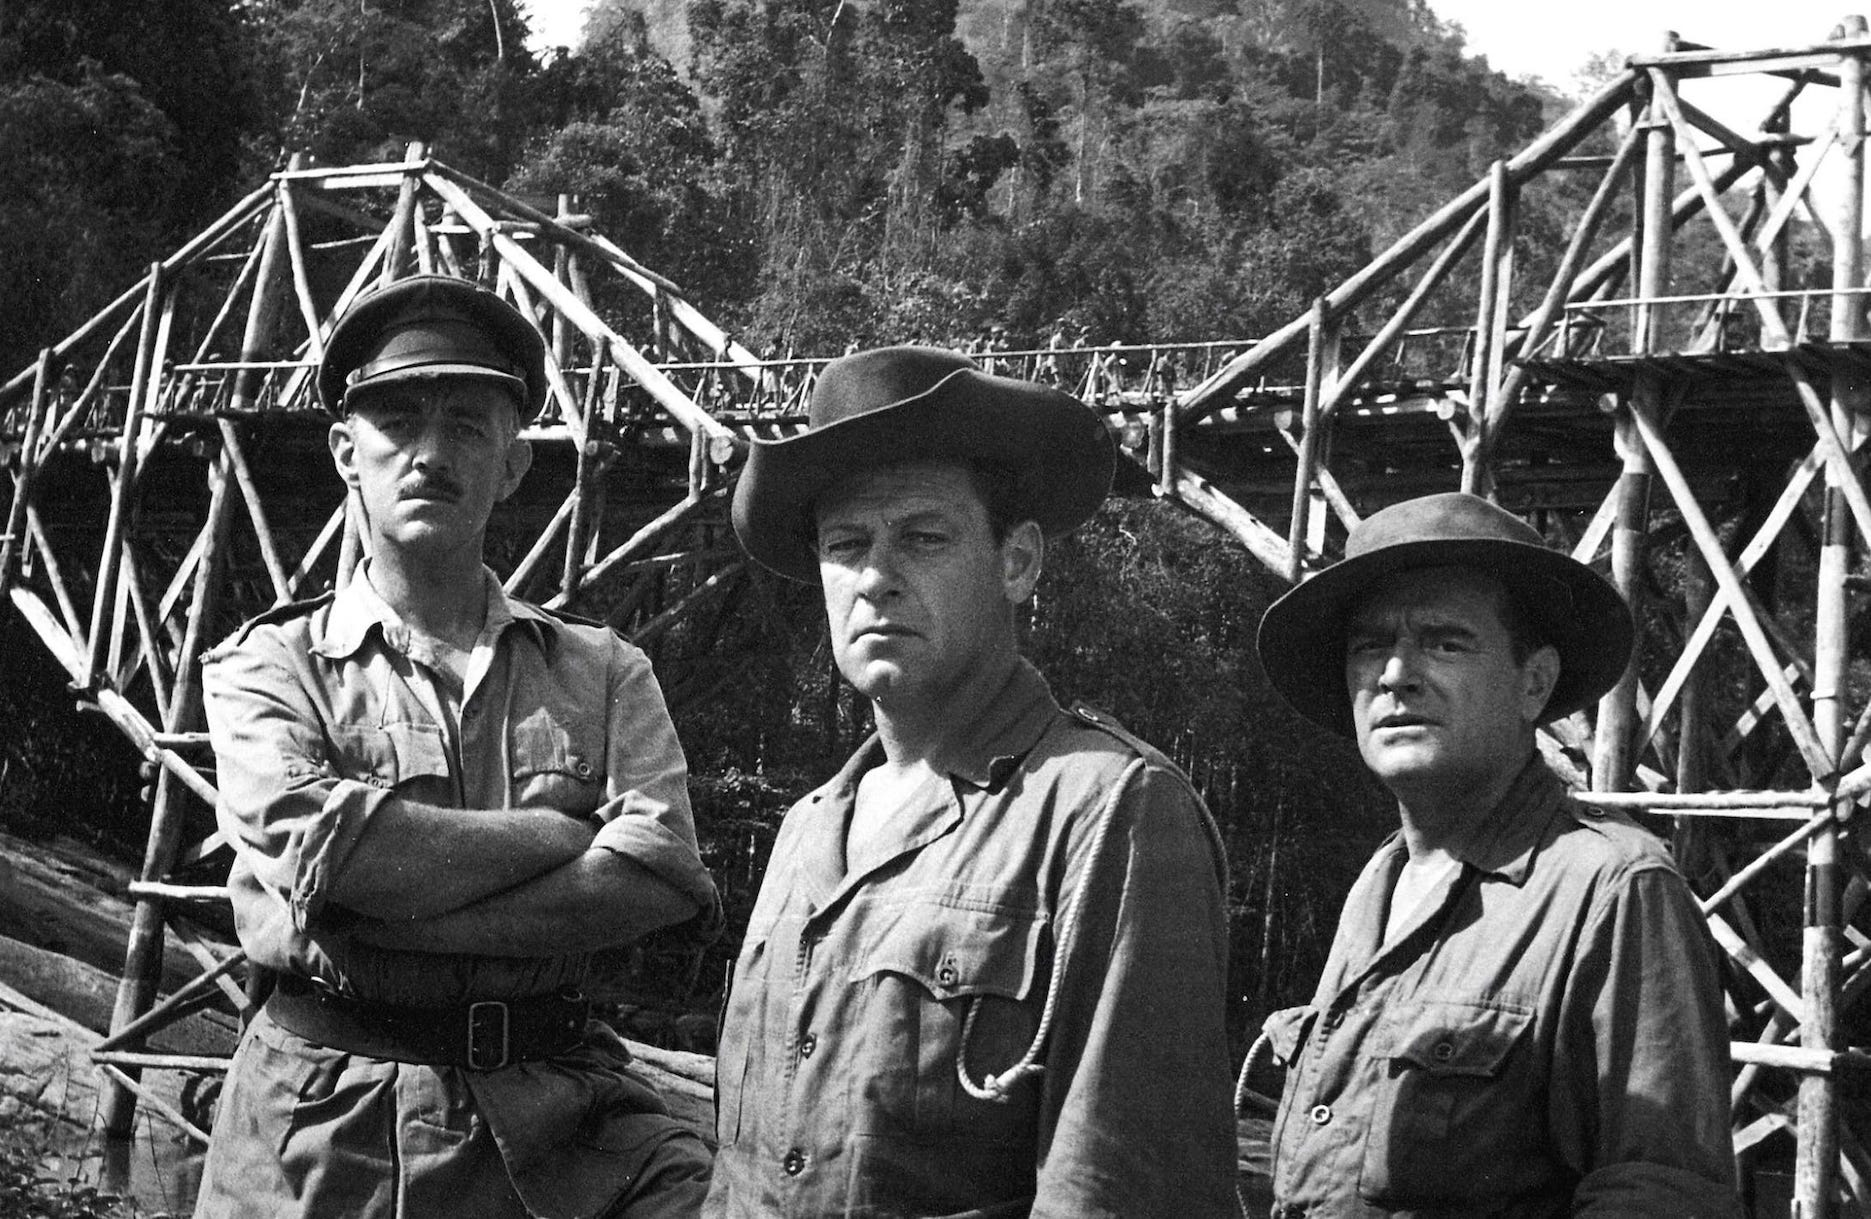 The Bridge on the River Kwai film.